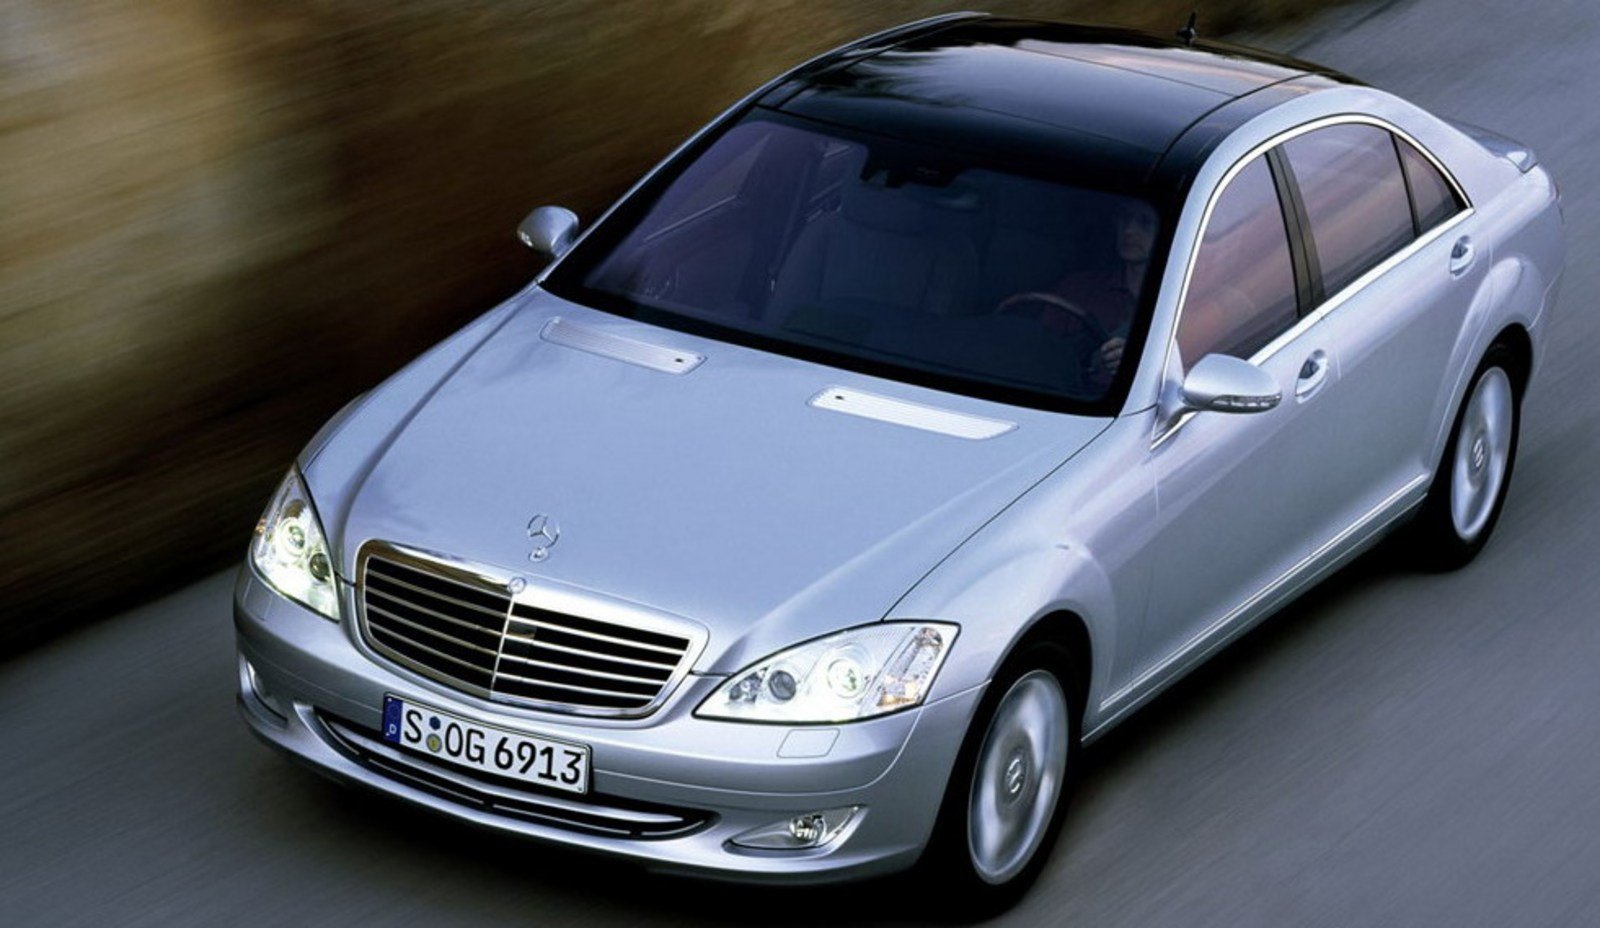 2005 mercedes s class from 2005 w221 review gallery top speed. Black Bedroom Furniture Sets. Home Design Ideas